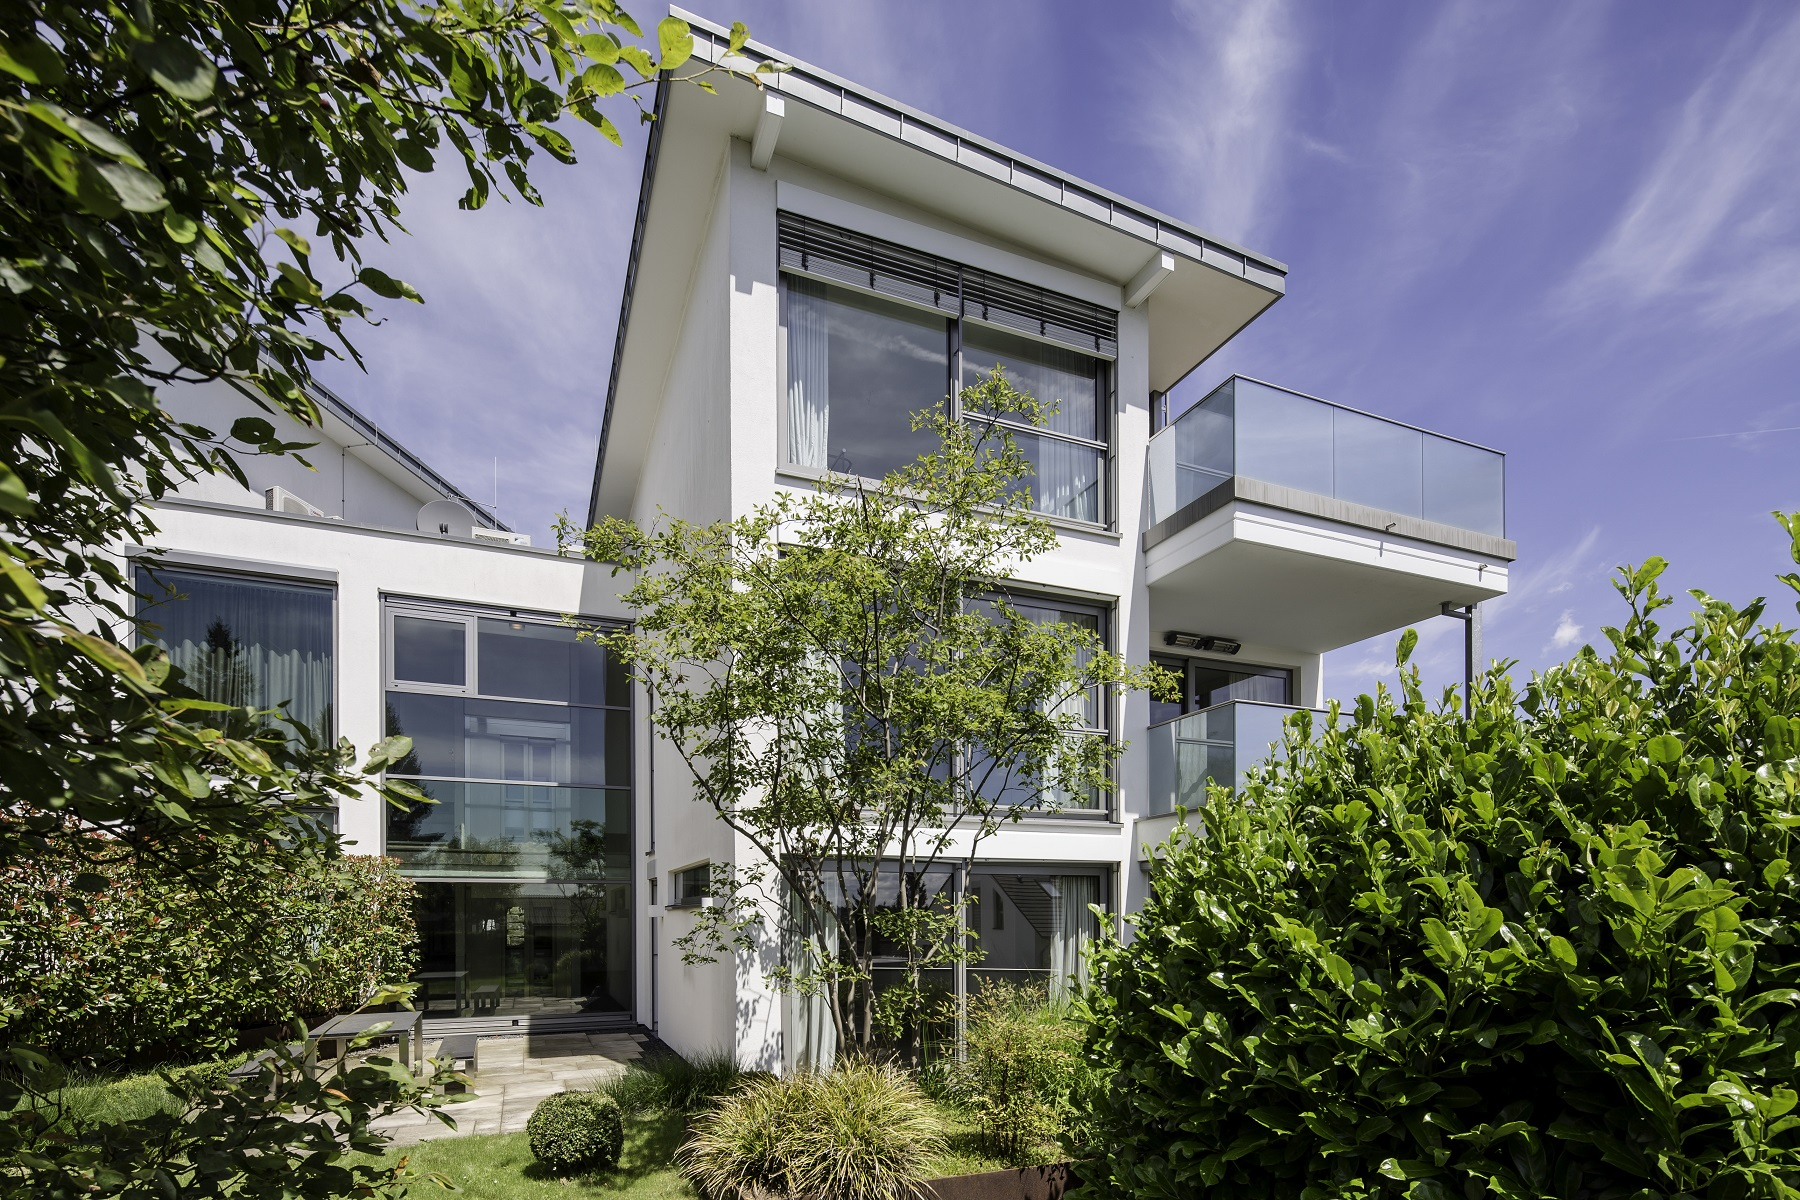 Single Family Home for Sale at Very Exclusive Villa in Best Location Wiesbaden, Hessen, 65191 Germany